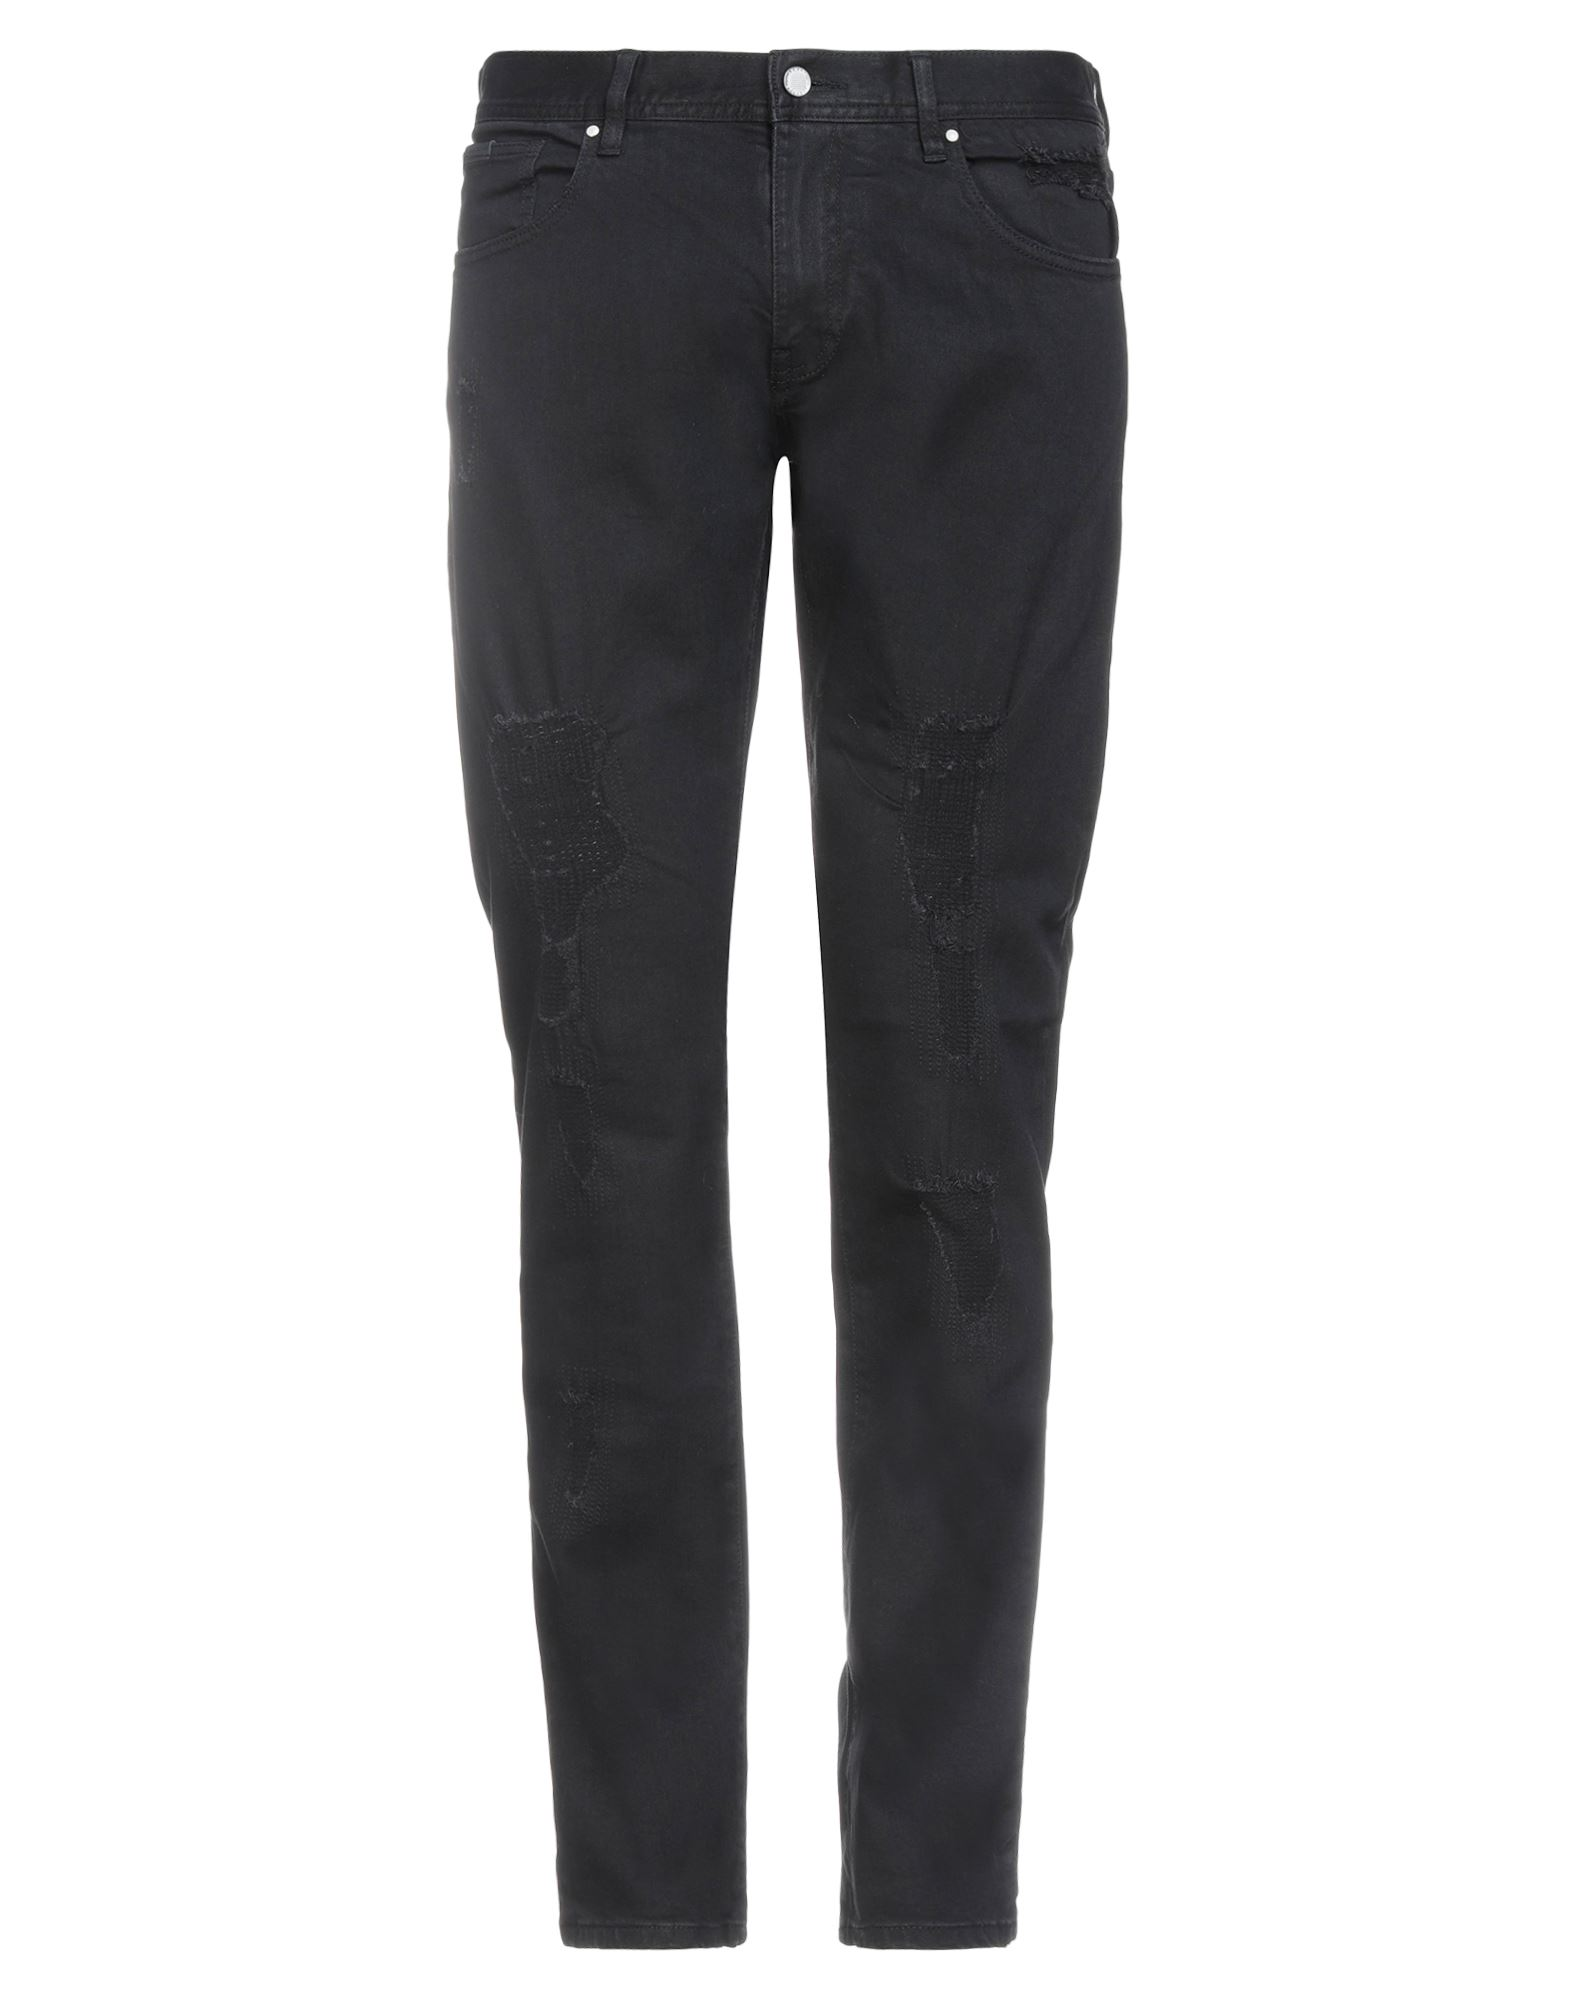 ARMANI EXCHANGE Denim pants - Item 42832708